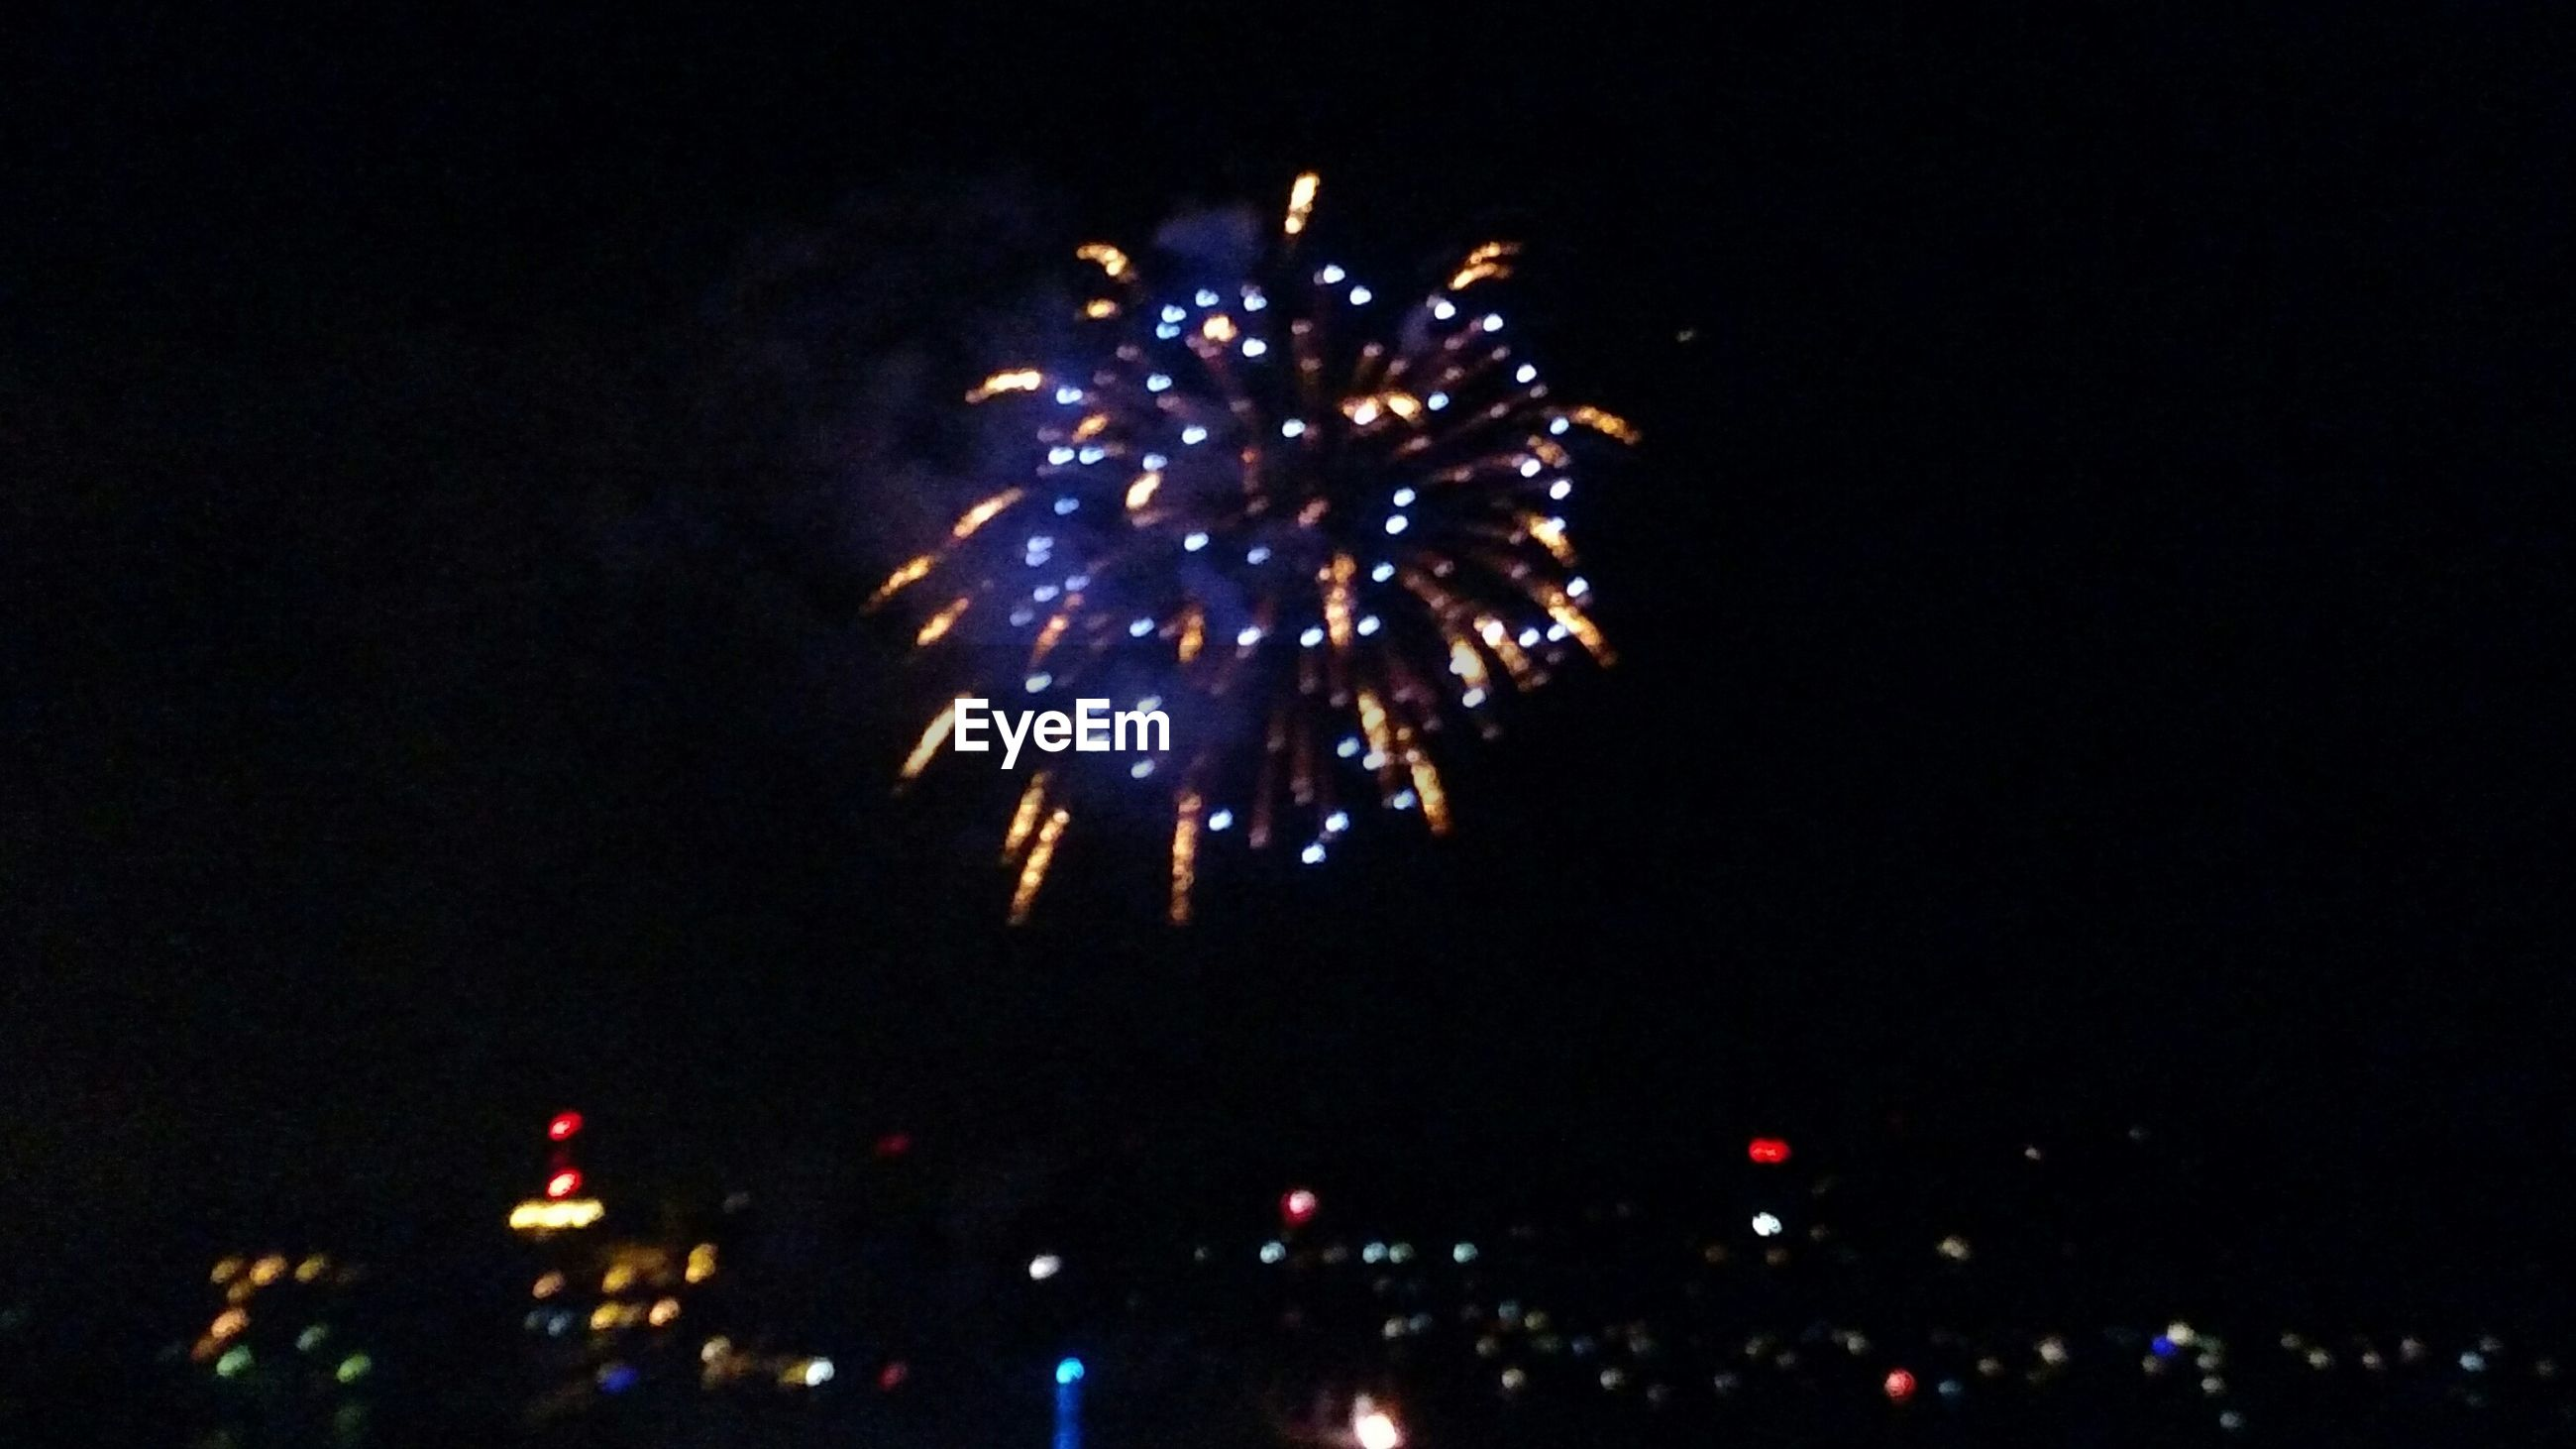 LOW ANGLE VIEW OF FIREWORKS DISPLAY